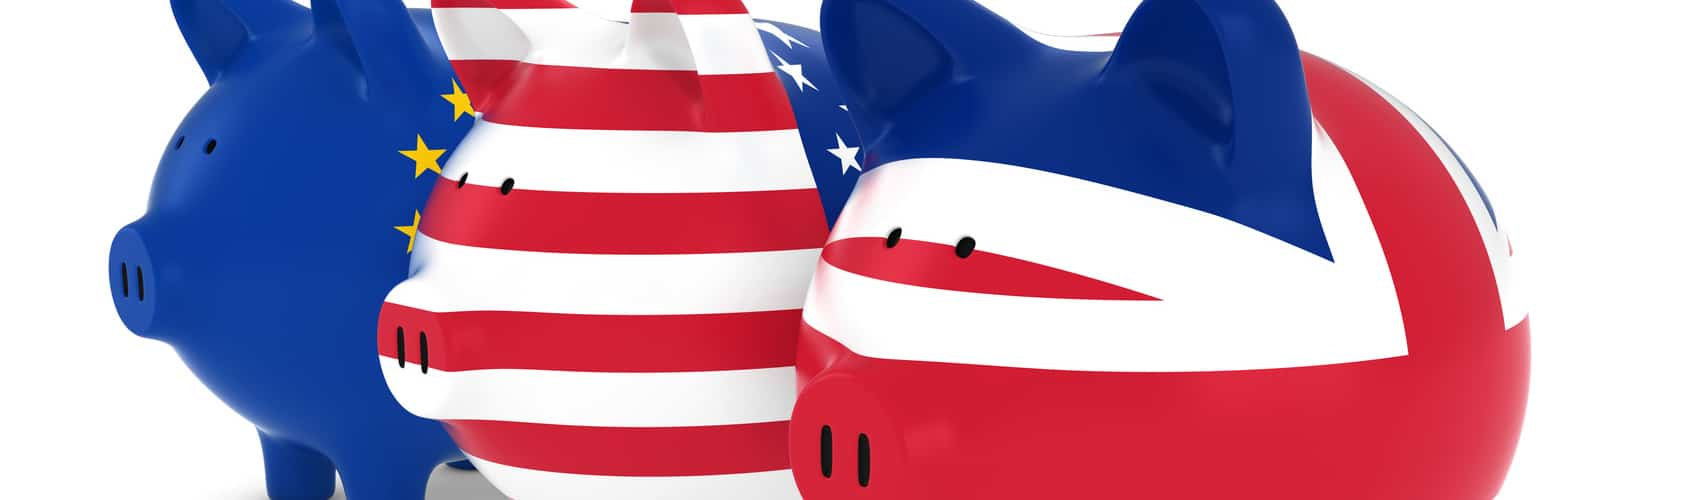 The SEC brings relief to cross-border MiFID II compliance. So why are US clients still worried?